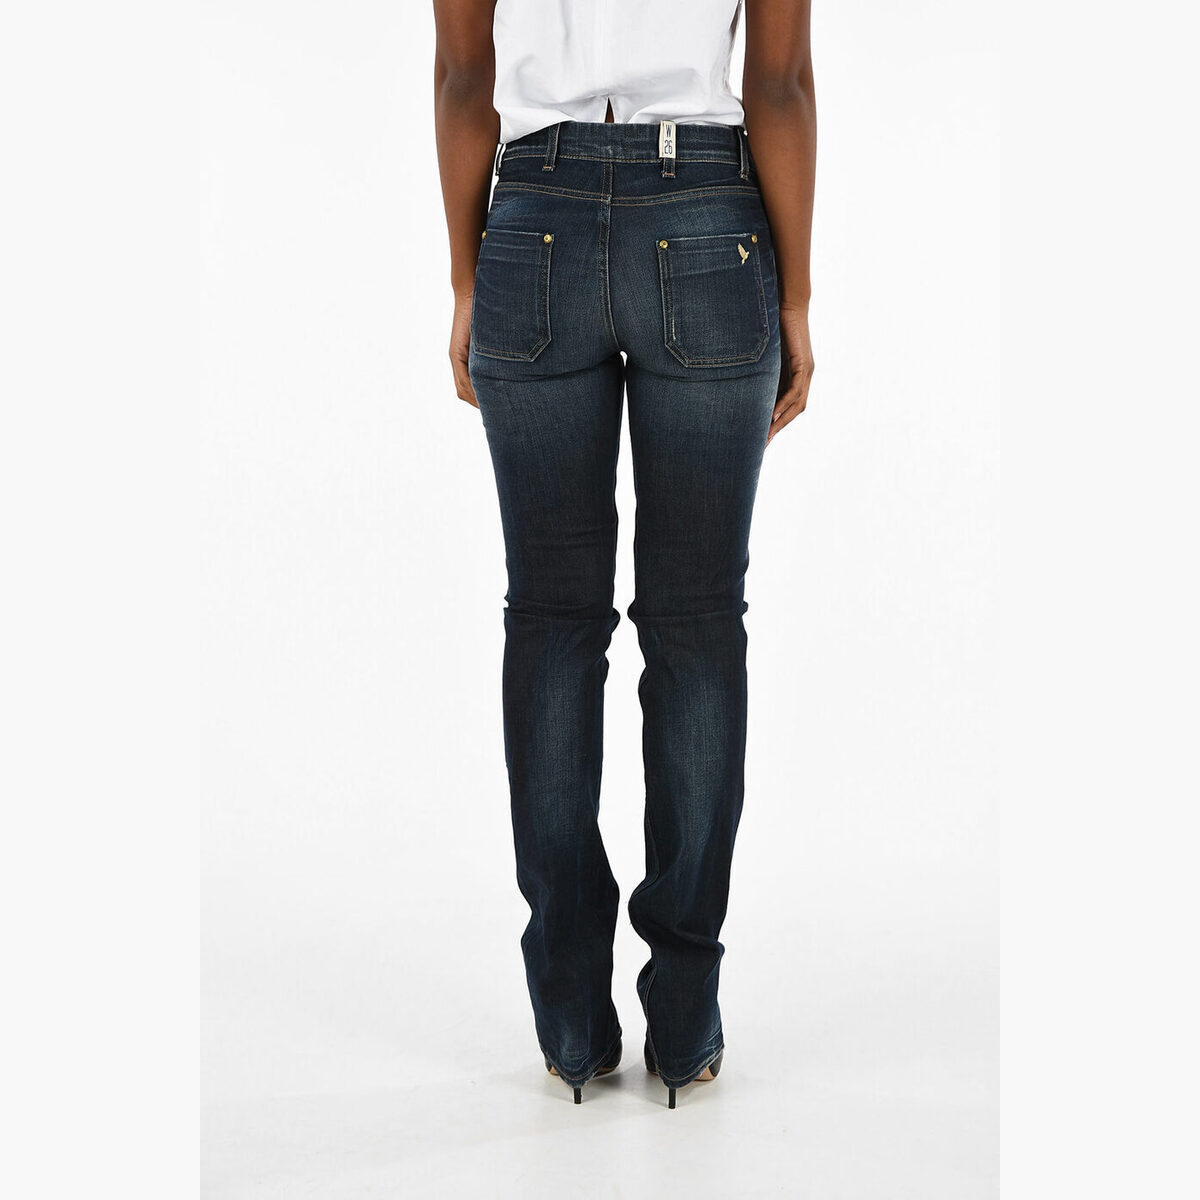 shop mih jeans clothing